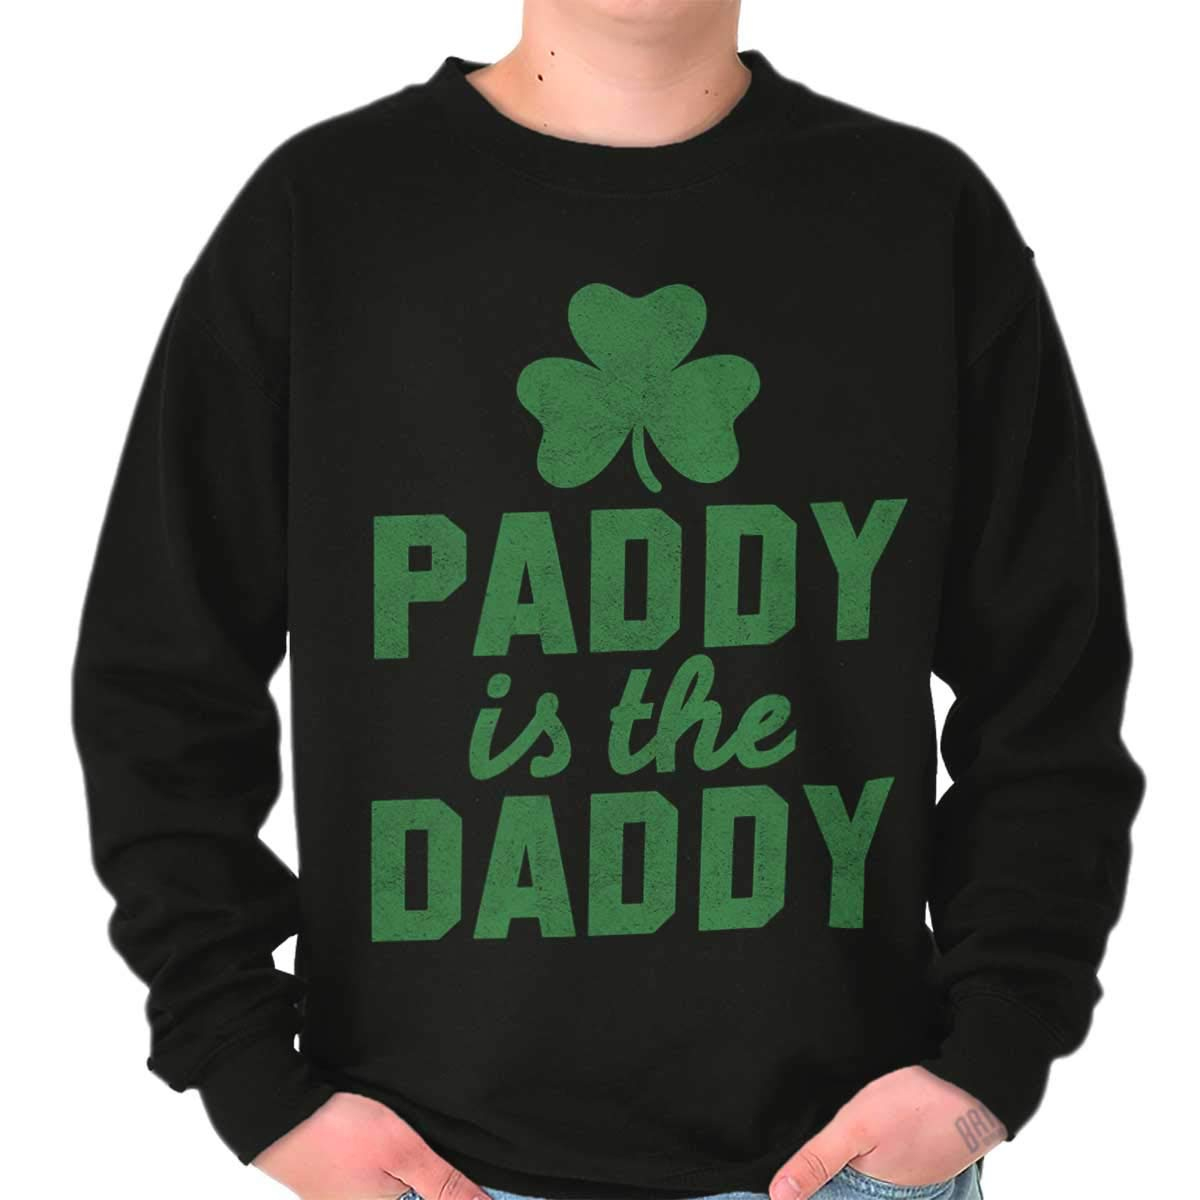 06bf8cdb2 Amazon.com: Brisco Brands Paddy Daddy Funny St Patricks Day Drinking Crewneck  Sweatshirt: Clothing